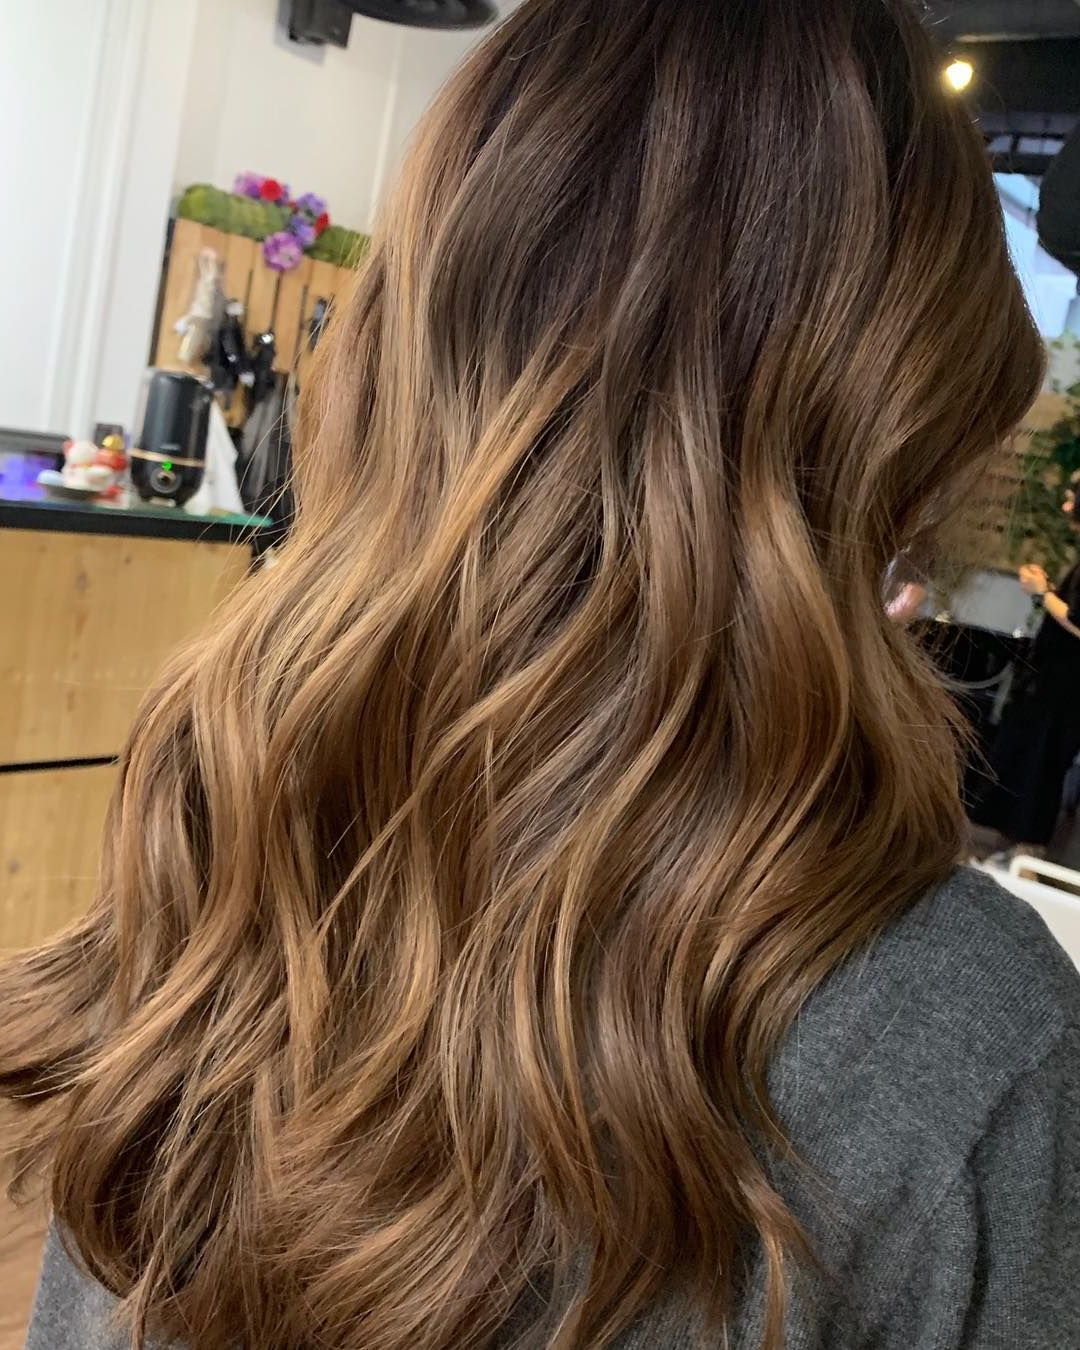 Guytangmydentity #hairbesties #metallics #reflective #shiny For Most Up To Date Shiny Tousled Curls Hairstyles (Gallery 7 of 20)